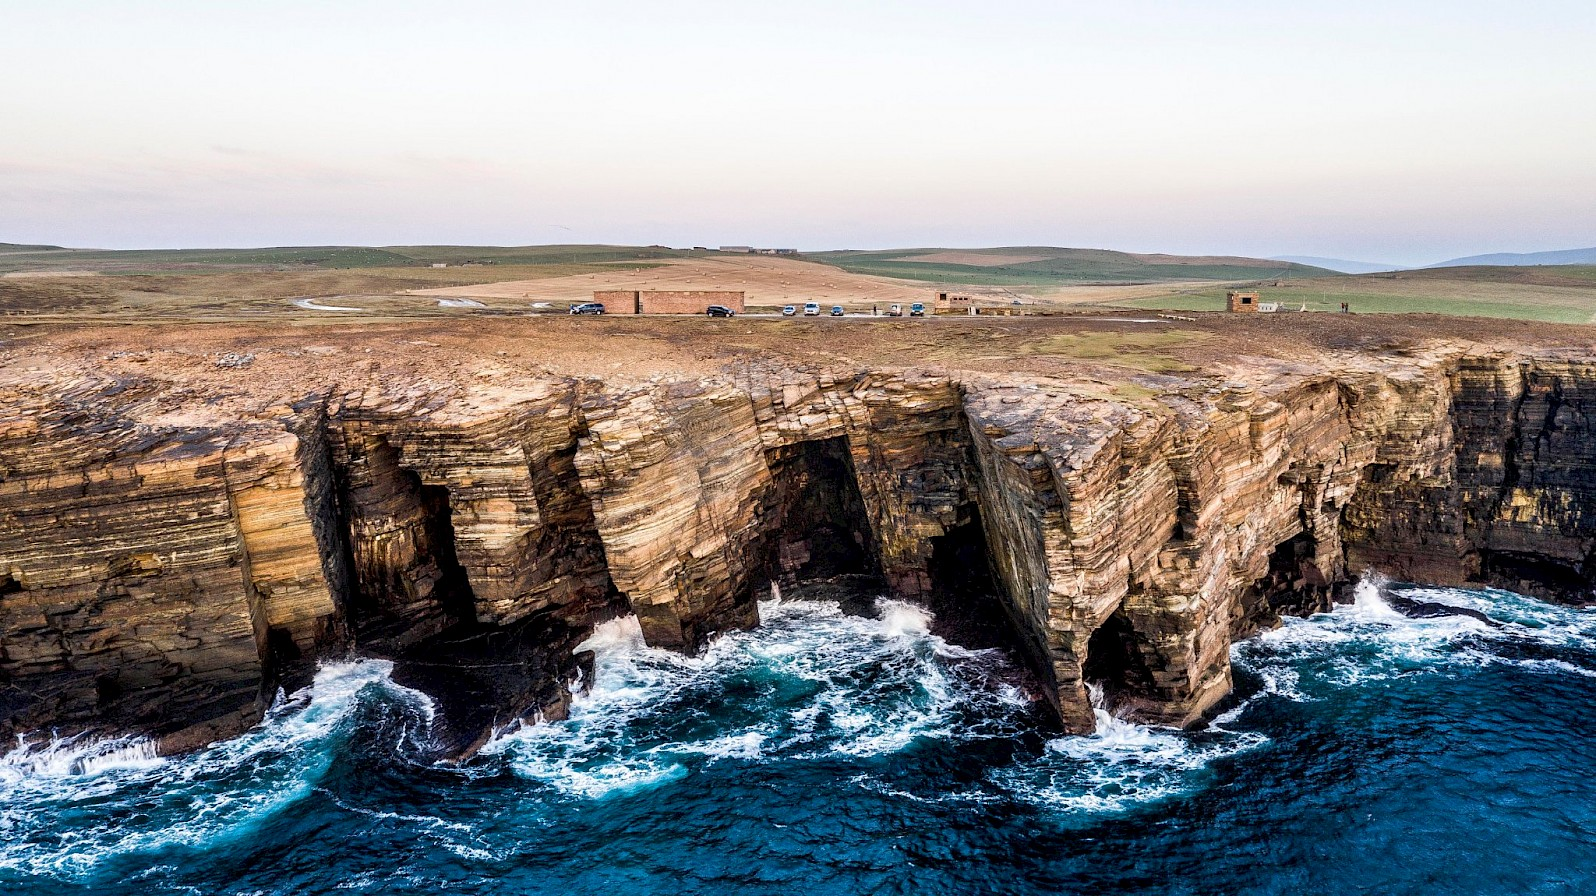 The cliffs at Yesnaby - image by Andras Farkas